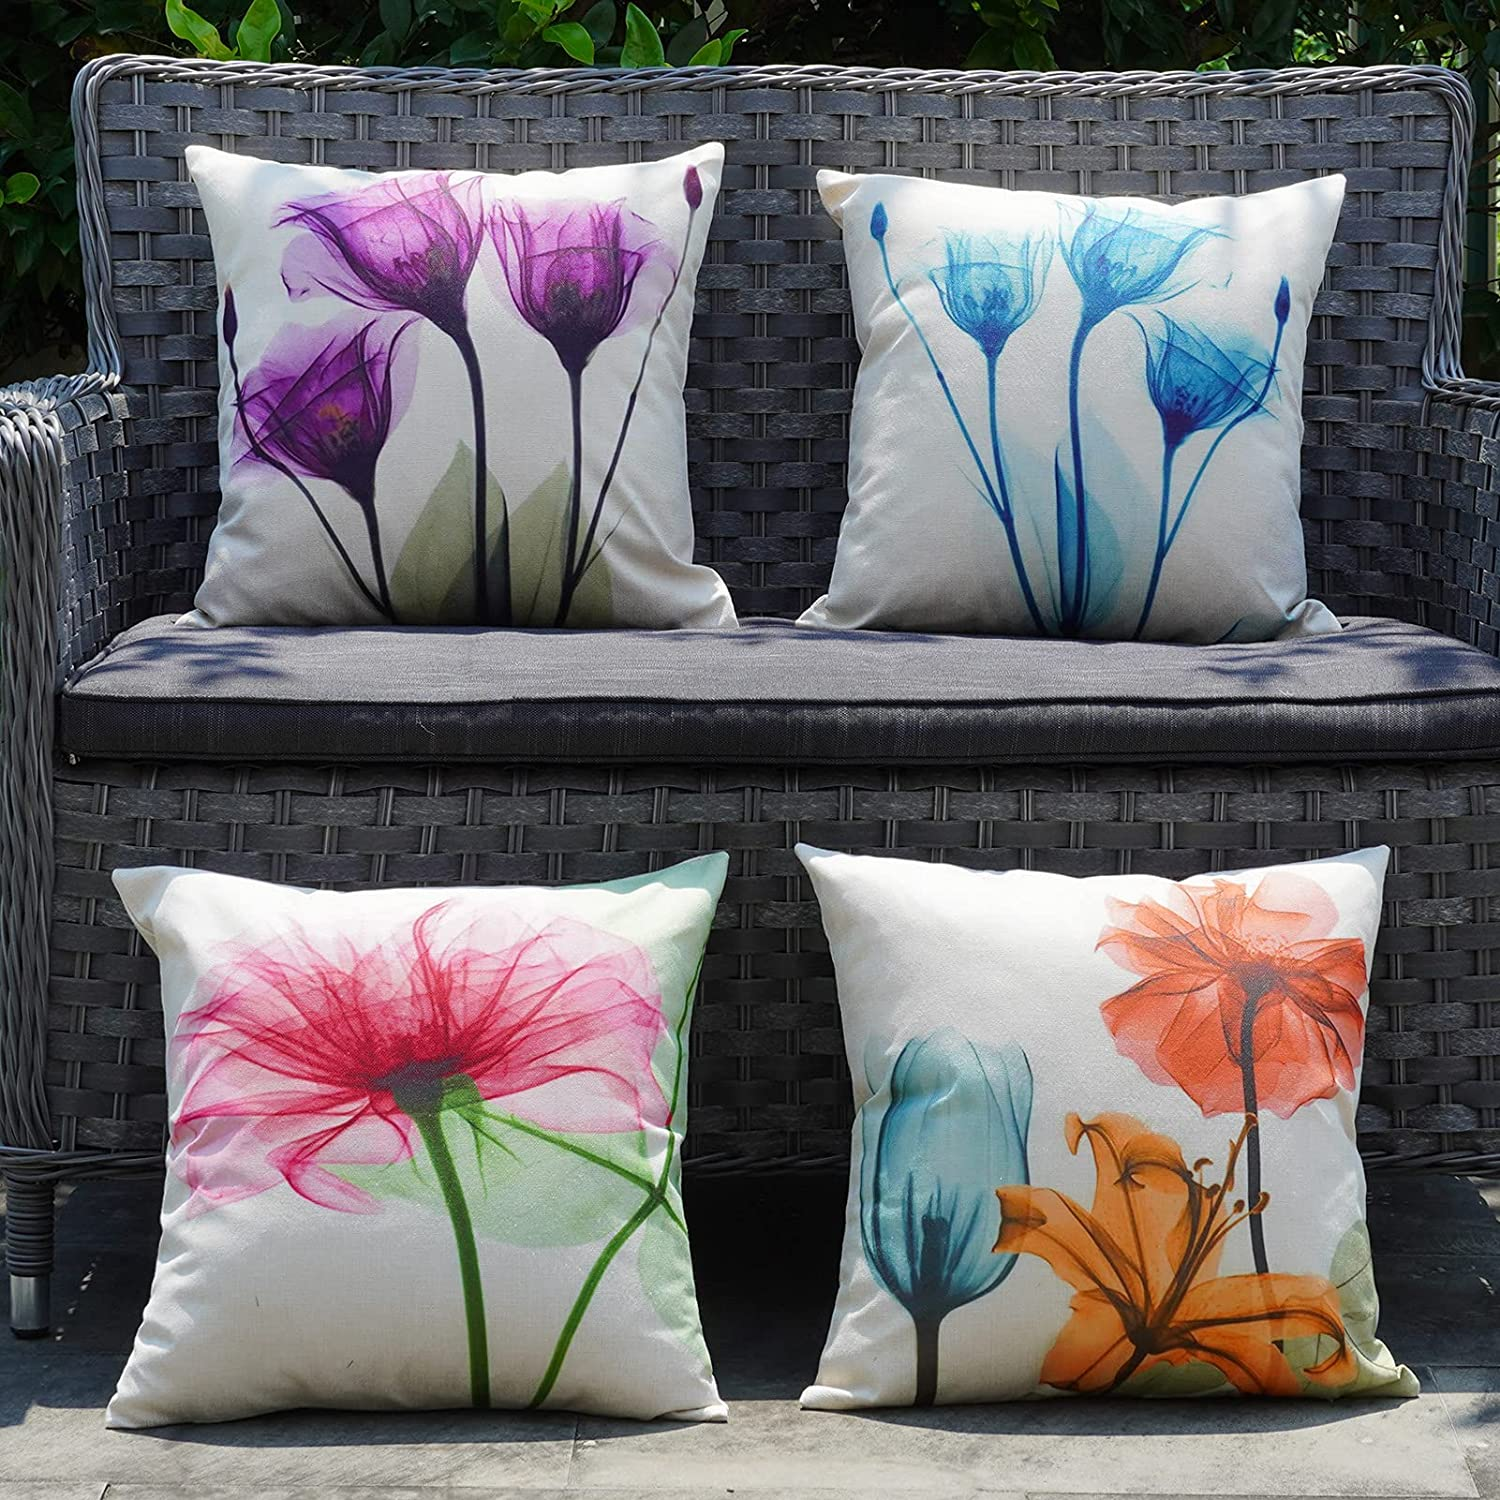 ONWAY Outdoor Pillow Covers Waterproof 18x18 Set of 4 Floral Decorative Throw Pillow Cover Spring Summer Farmhouse Pillows for Patio Furniture Couch and Sunbrella